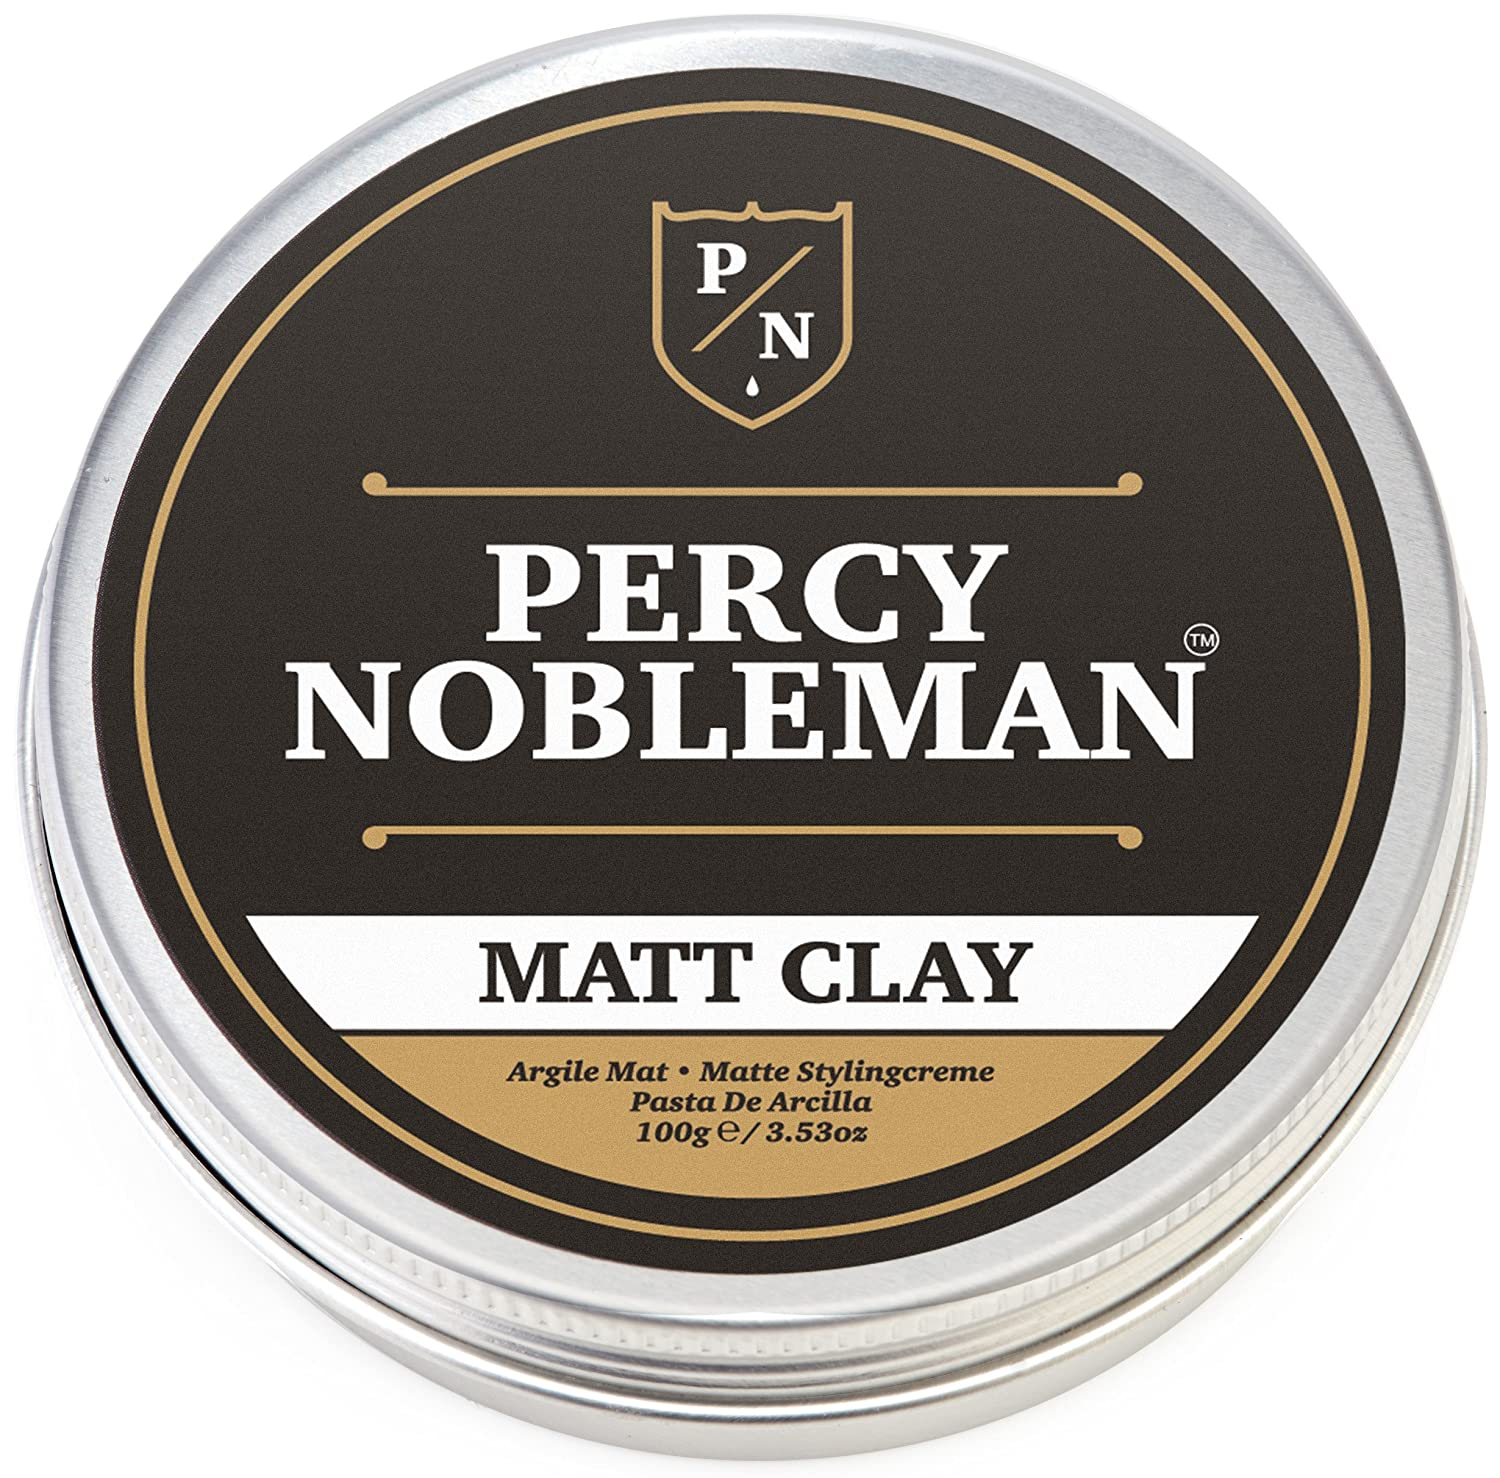 Matte Clay By Percy Nobleman, A Hair Clay For Men, 3.38oz